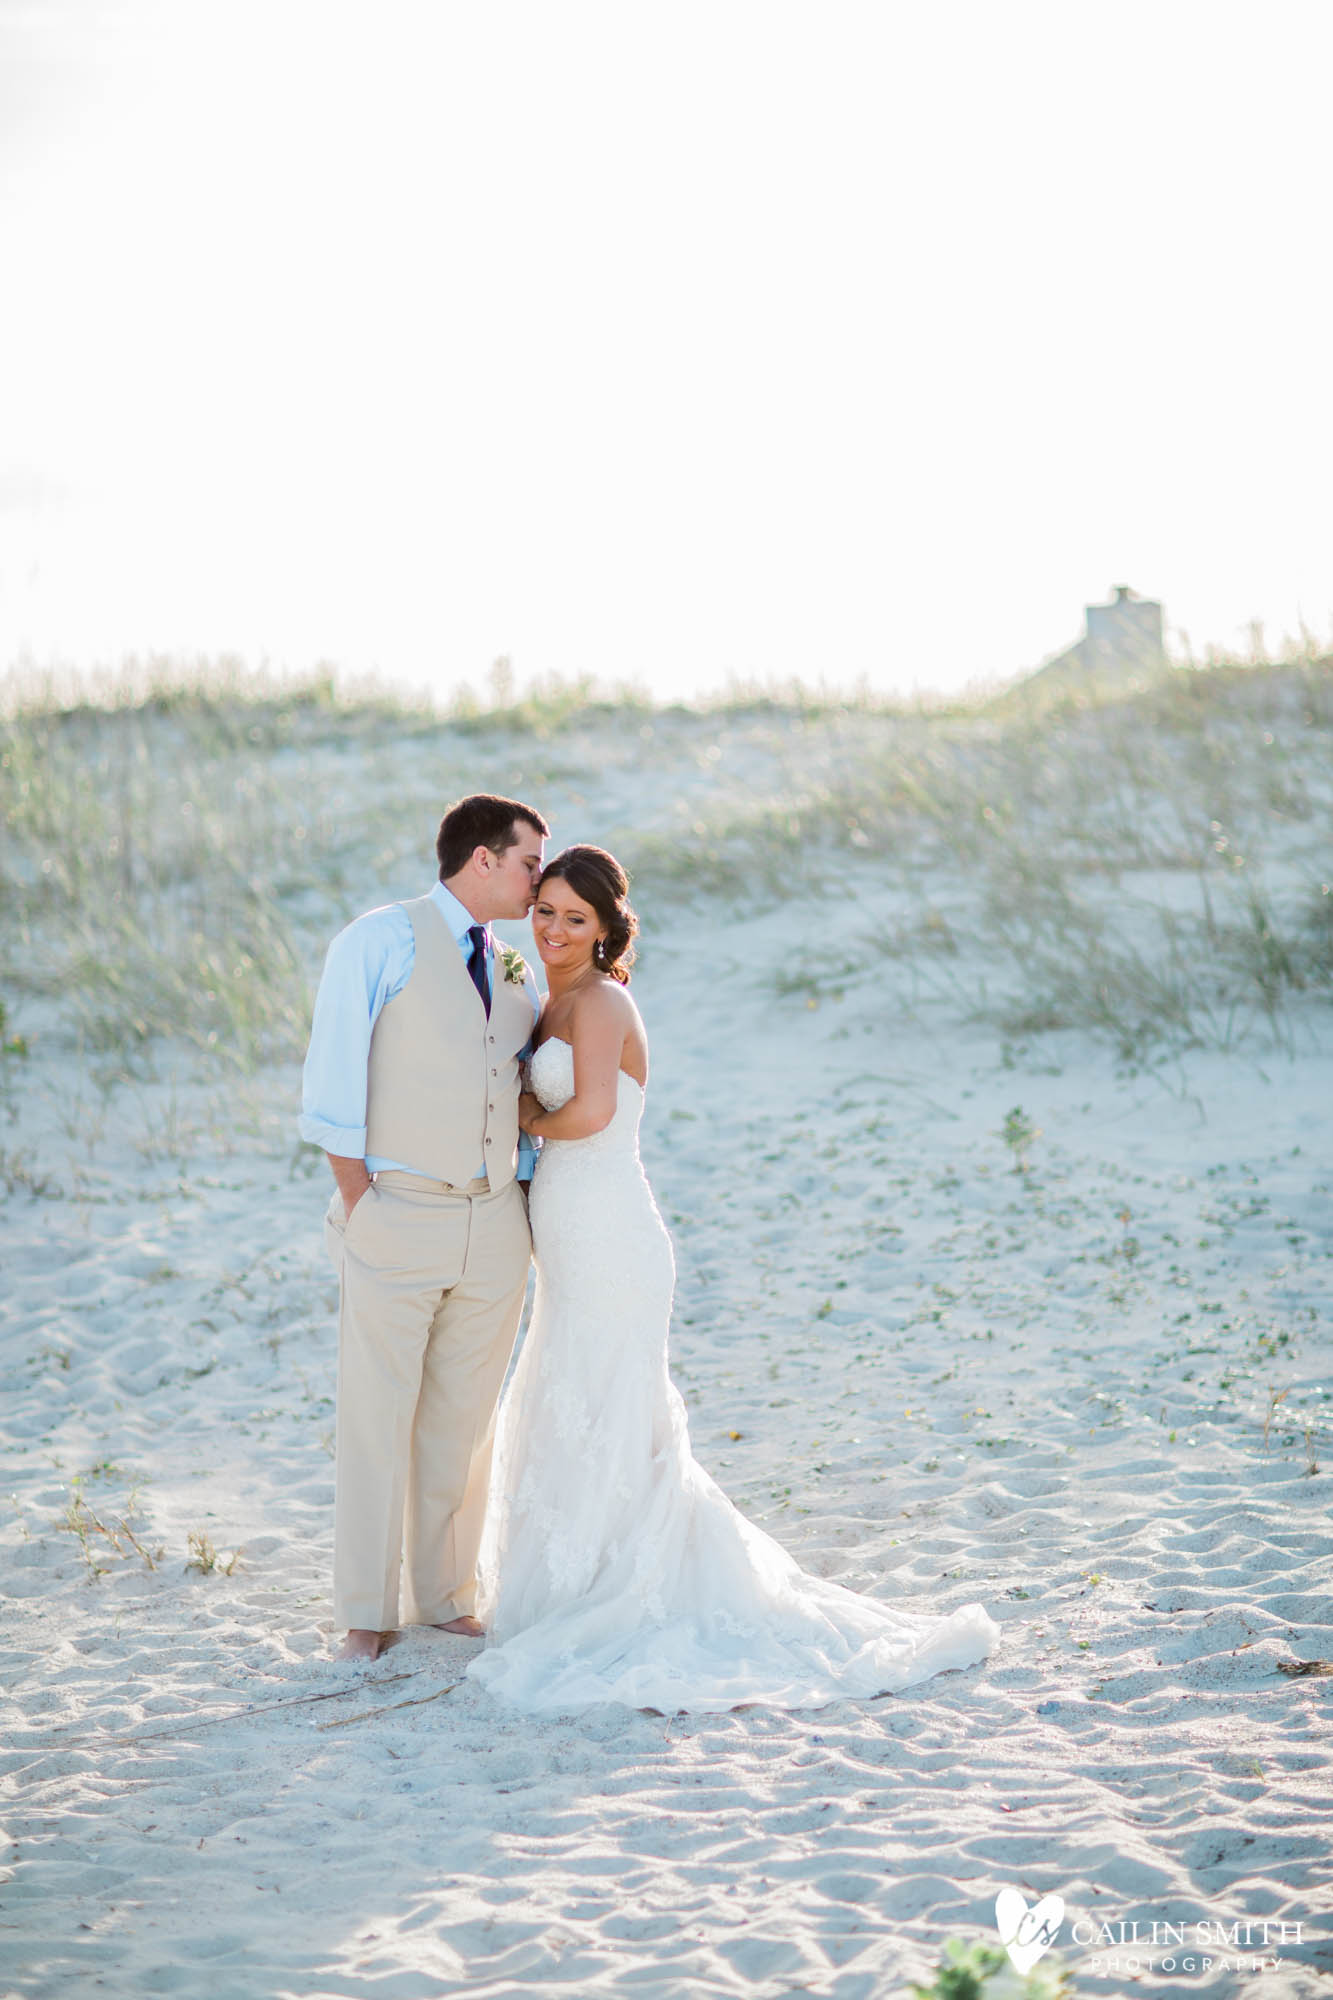 Kimberly_Ross_Amelia_Island_Wedding_Photography_041.jpg